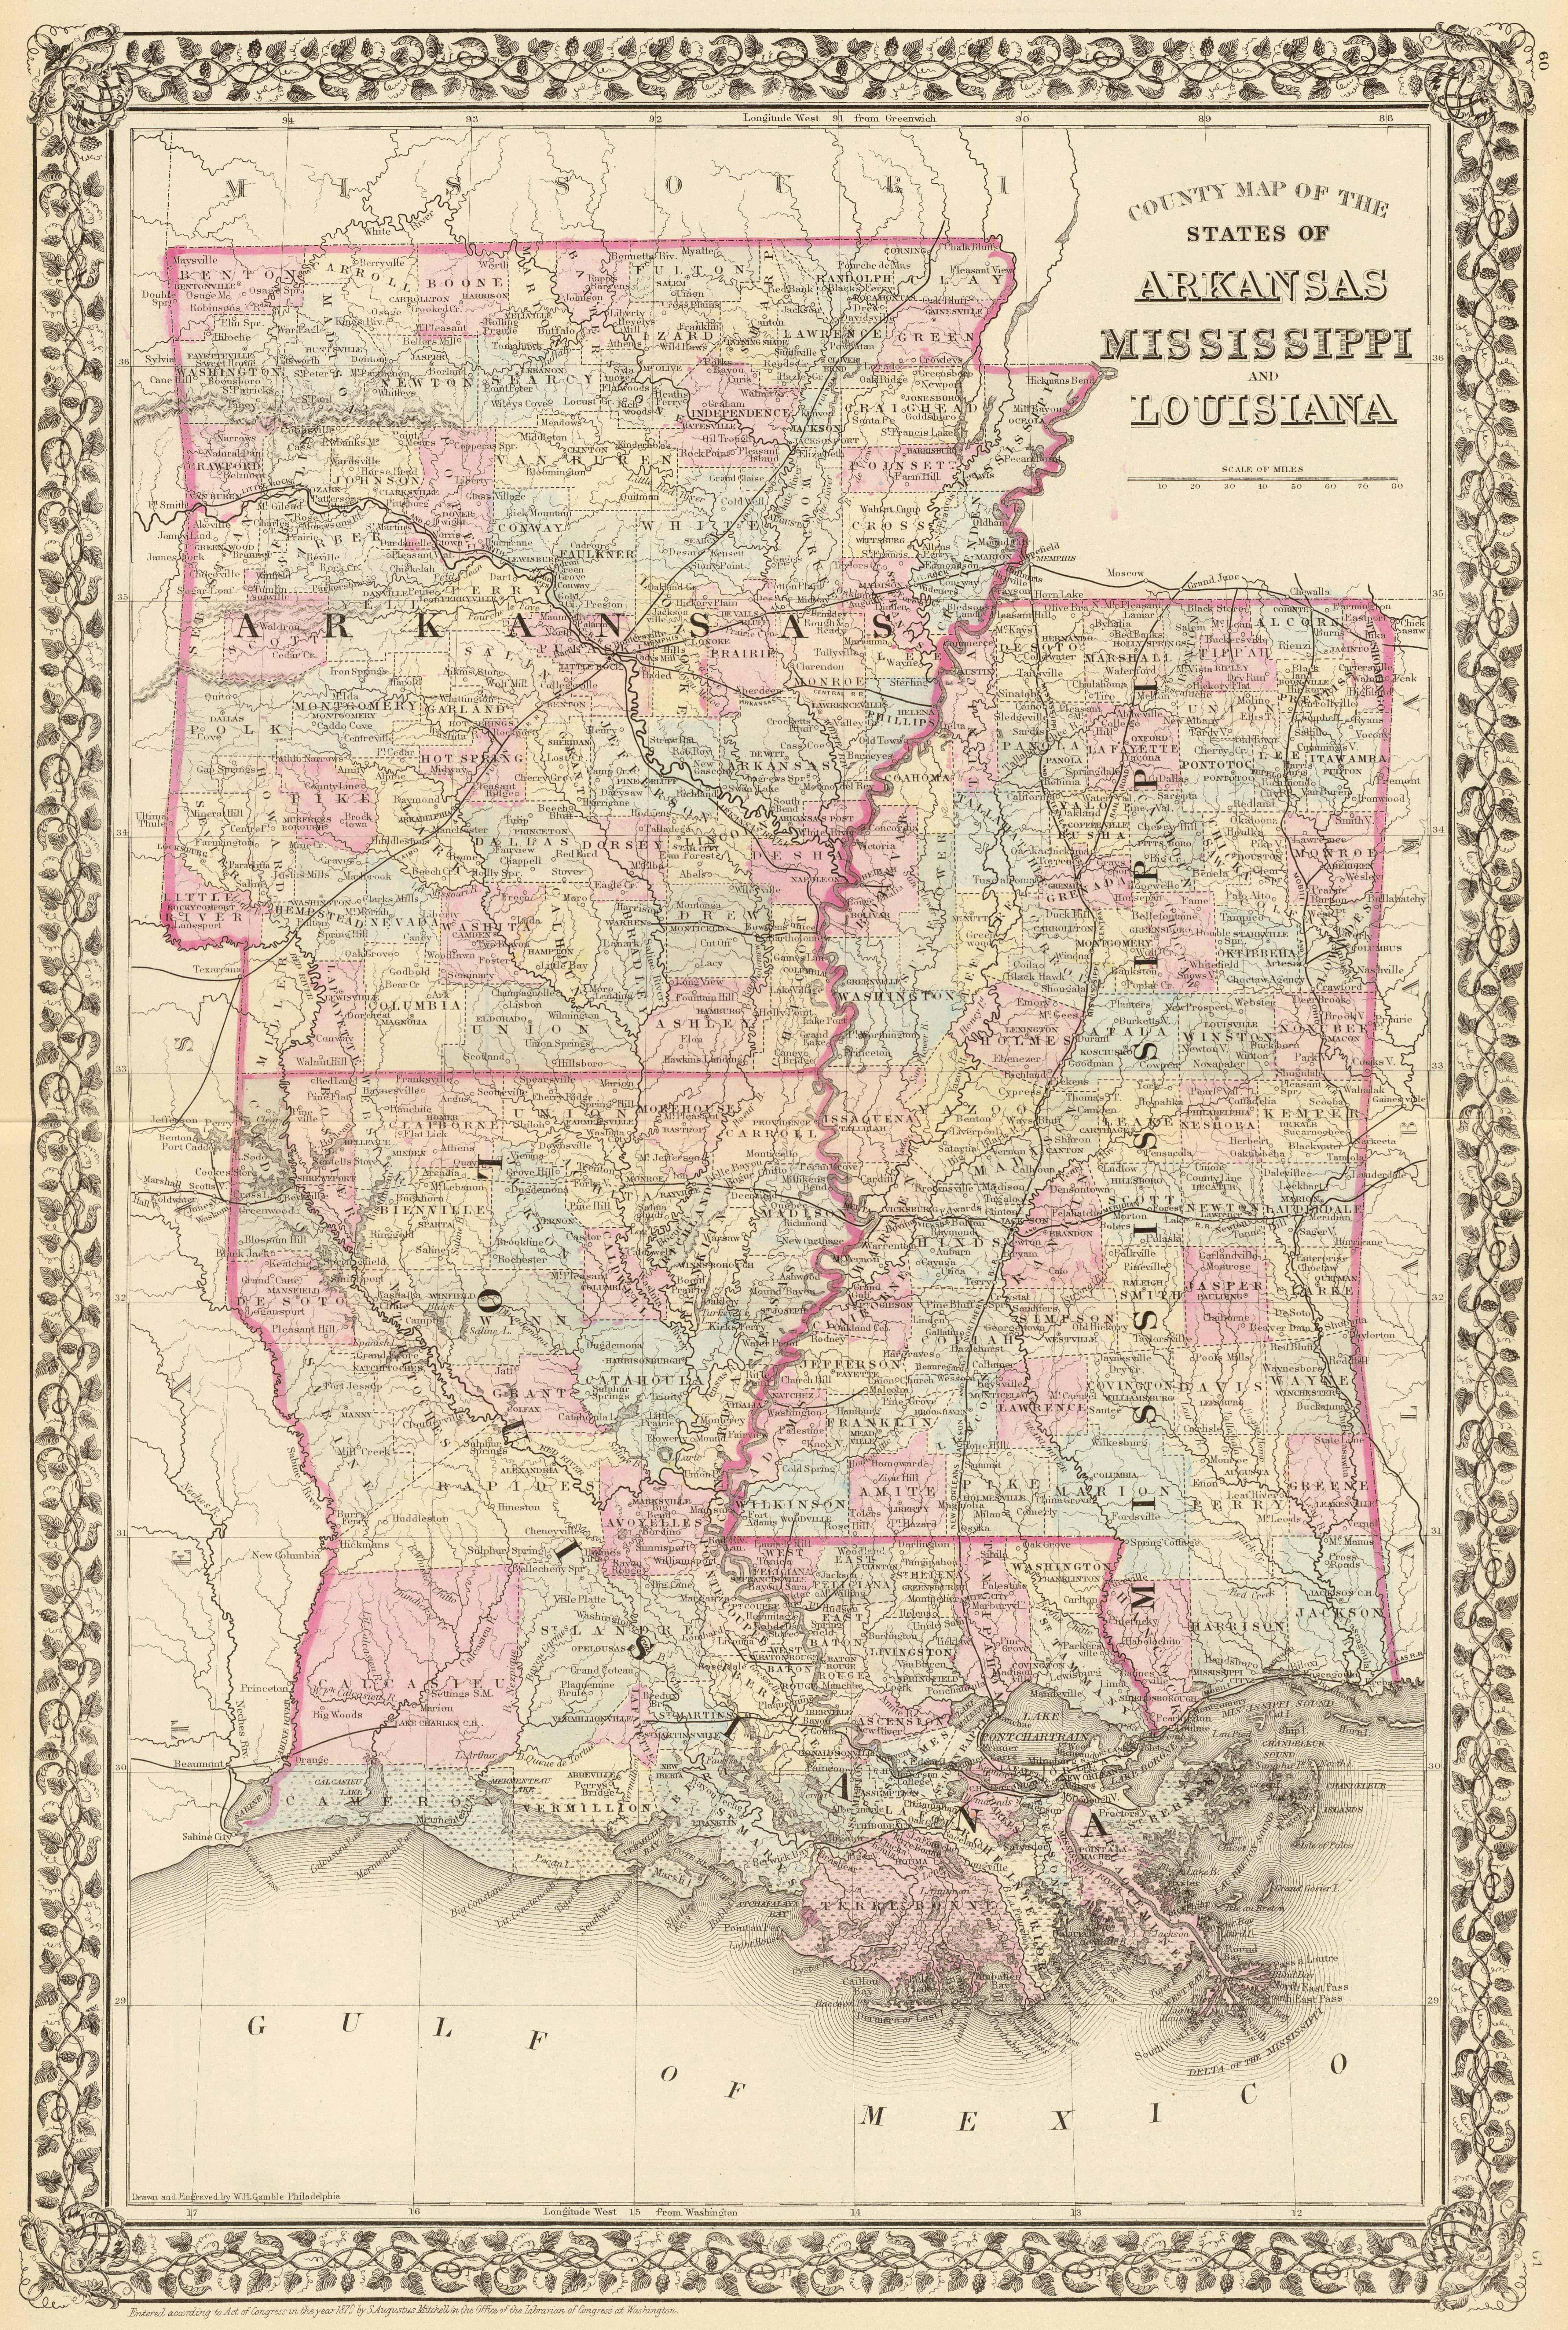 Old Historical City, County and State Maps of Mississippi on show me a map of vermont, show me a map of monaco, show me a map of lake ontario, show me a map of las vegas strip, show me a map of northeast ohio, show me a map of the southwest, show me a map of atlanta georgia, show me a map of long island, show me a map of weather, show me a map of southern florida, show me a map of yellowstone national park, show me a map of madagascar, show me a map of the mississippi river, show me a map of new england, show me a map of cambodia, show me a map of portugal, show me a map of all states, show me a map of australia, show me a map of east tennessee, show me a map of malaysia,